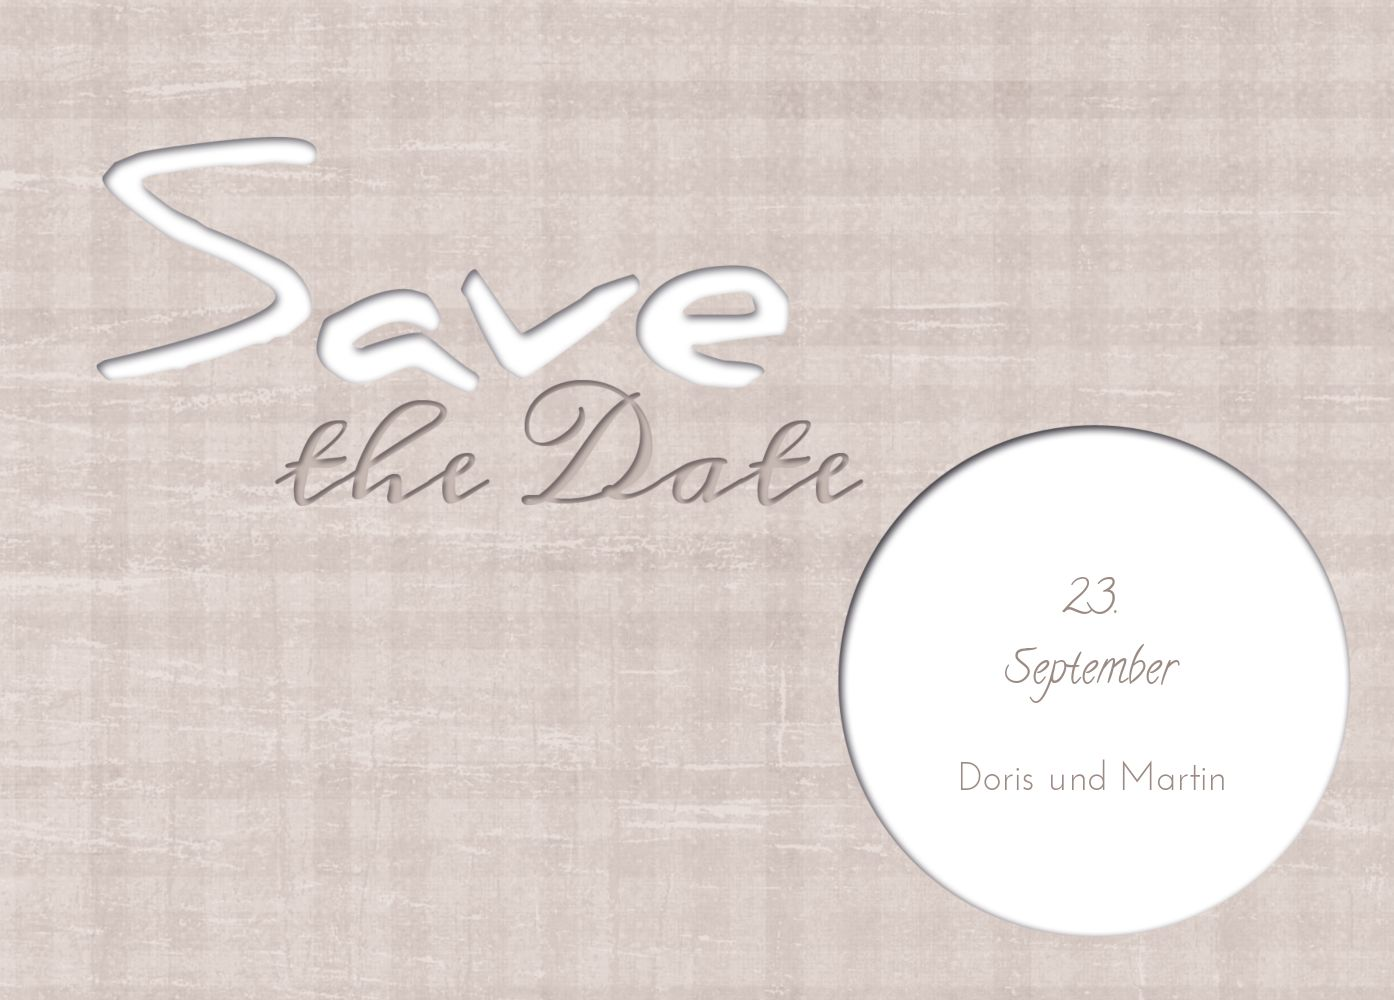 Ansicht 2 - Save-the-Date wedding harmony